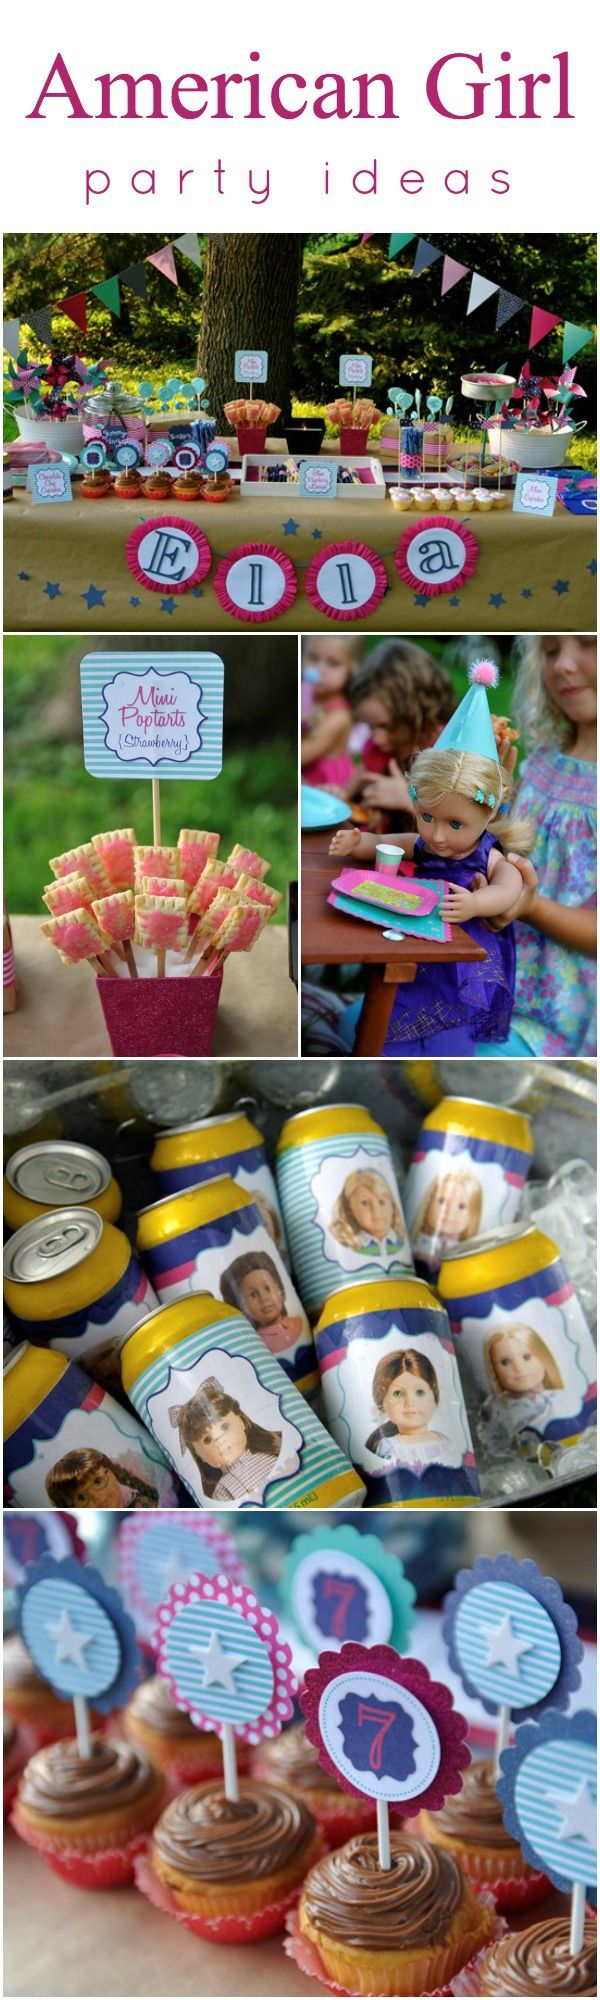 American Girl themed party ideas! <3 www.weheartparties.com